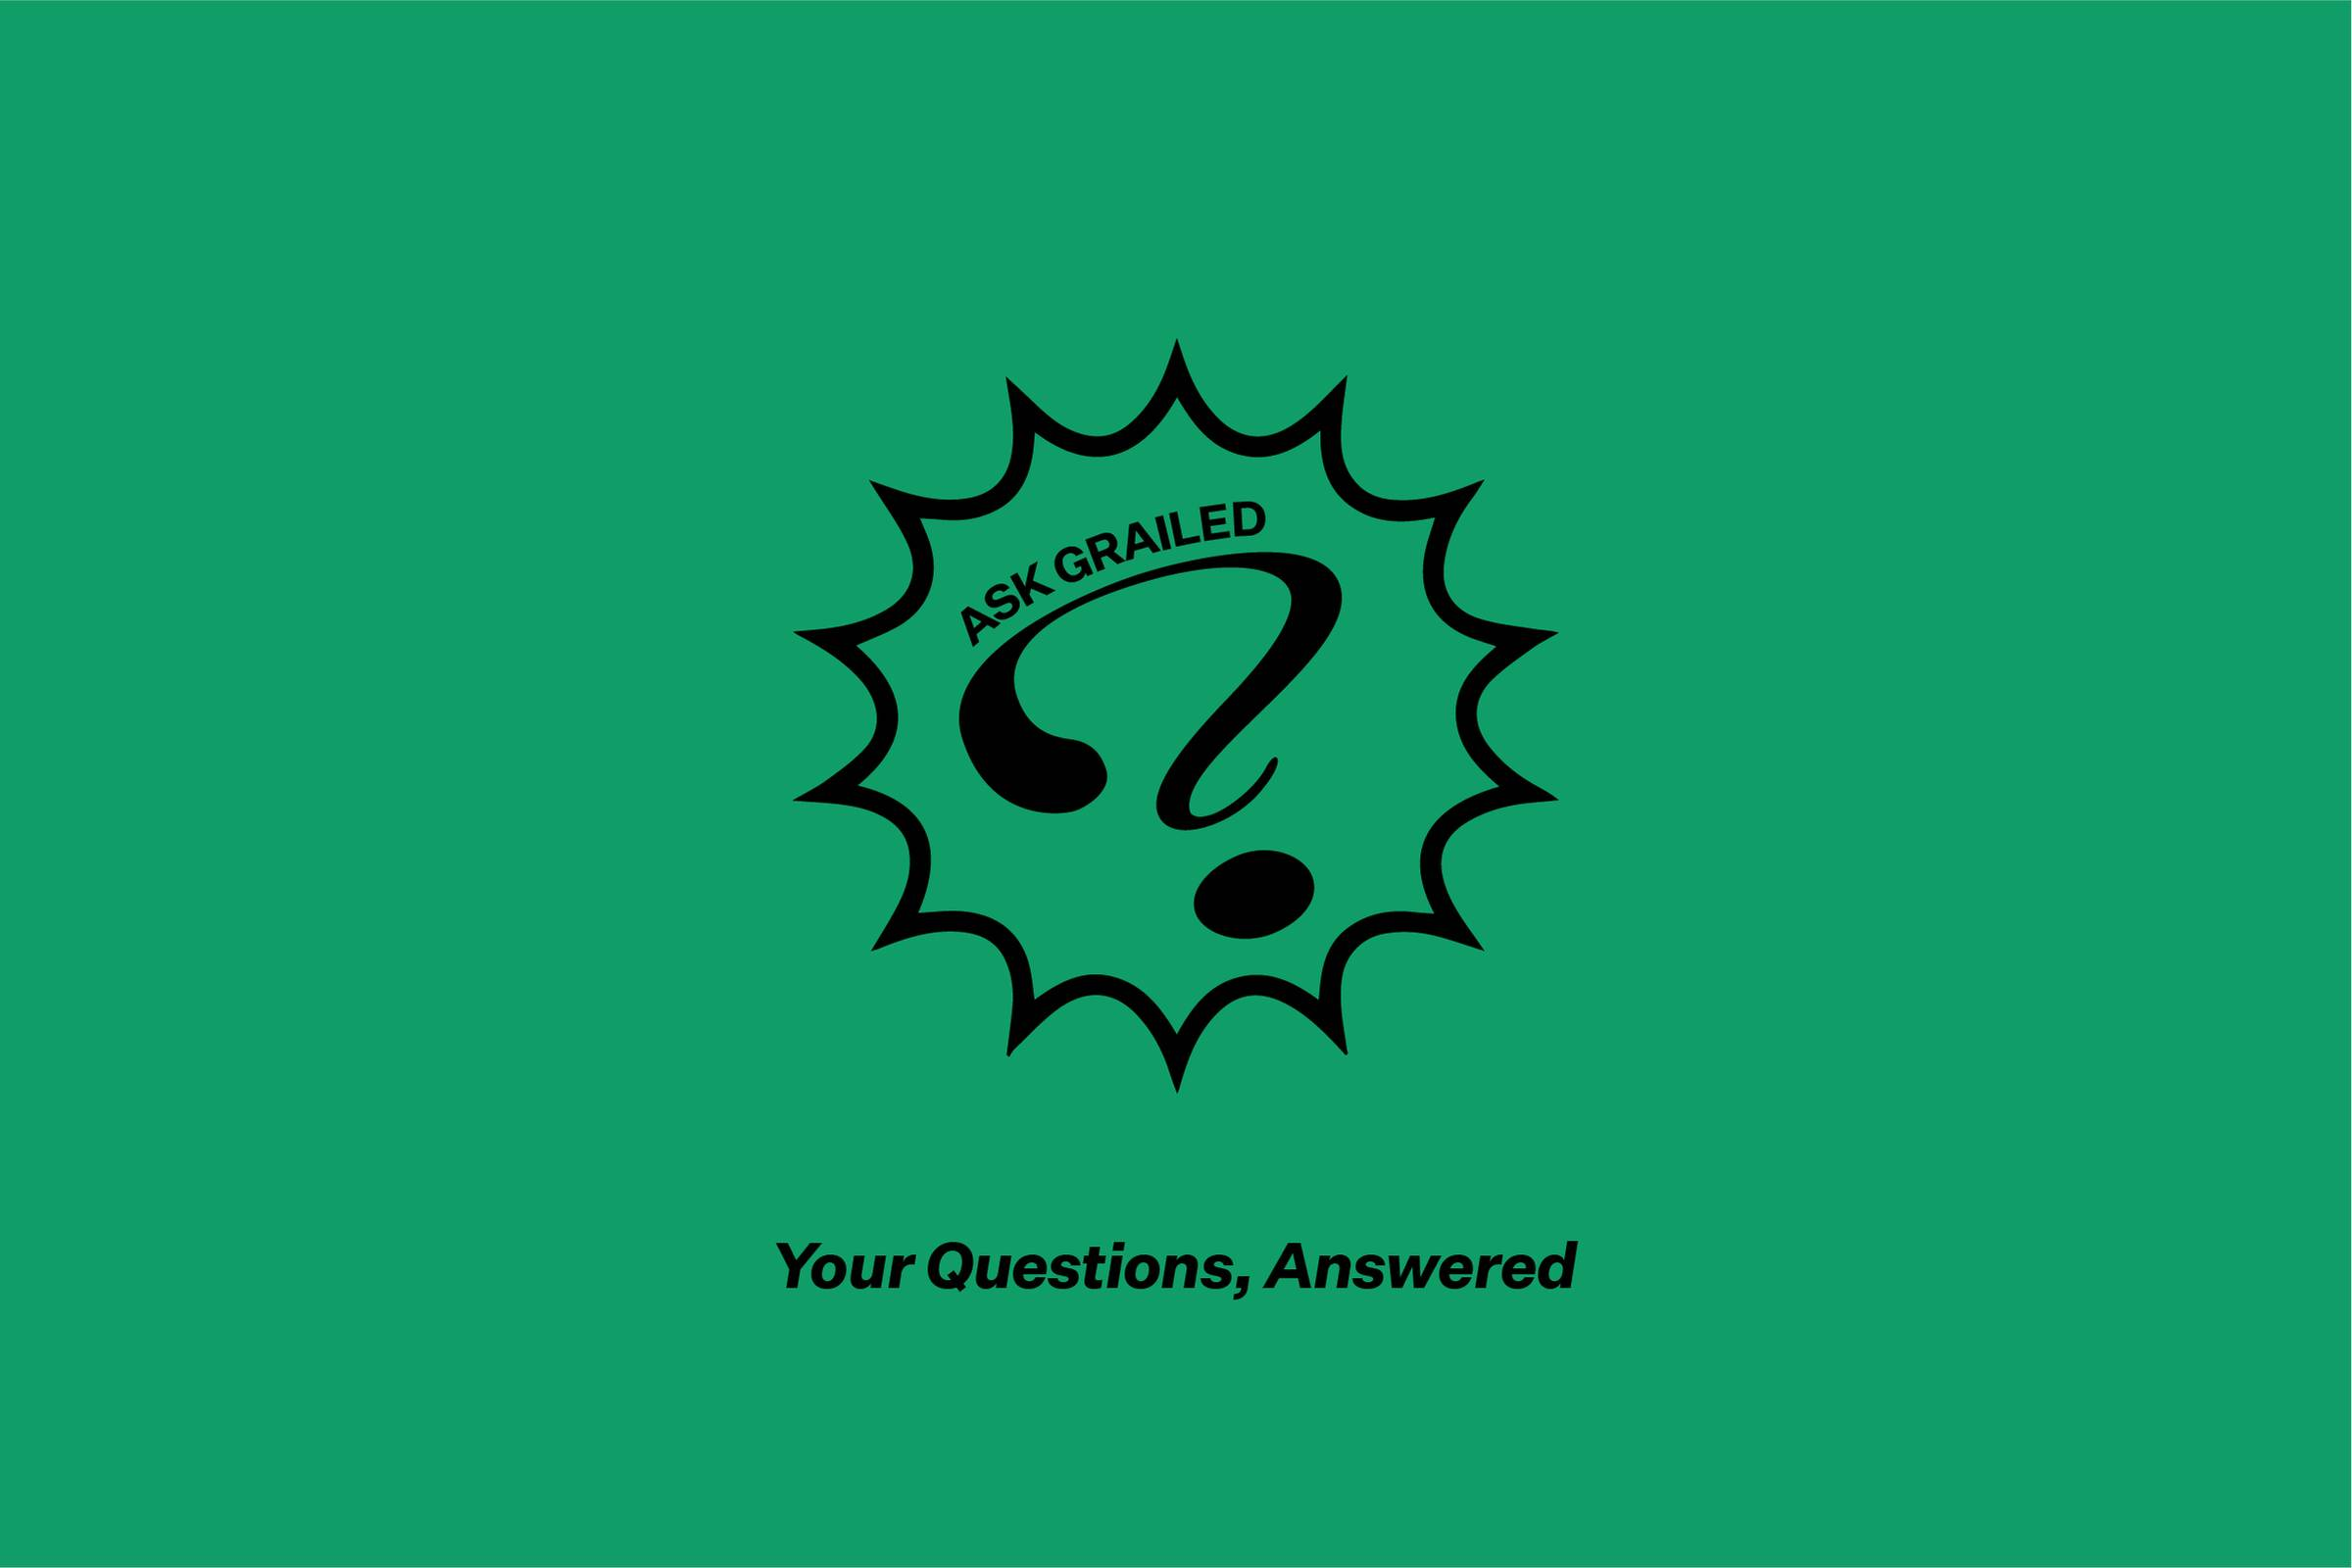 Ask Grailed (The Answers): August 21, 2019